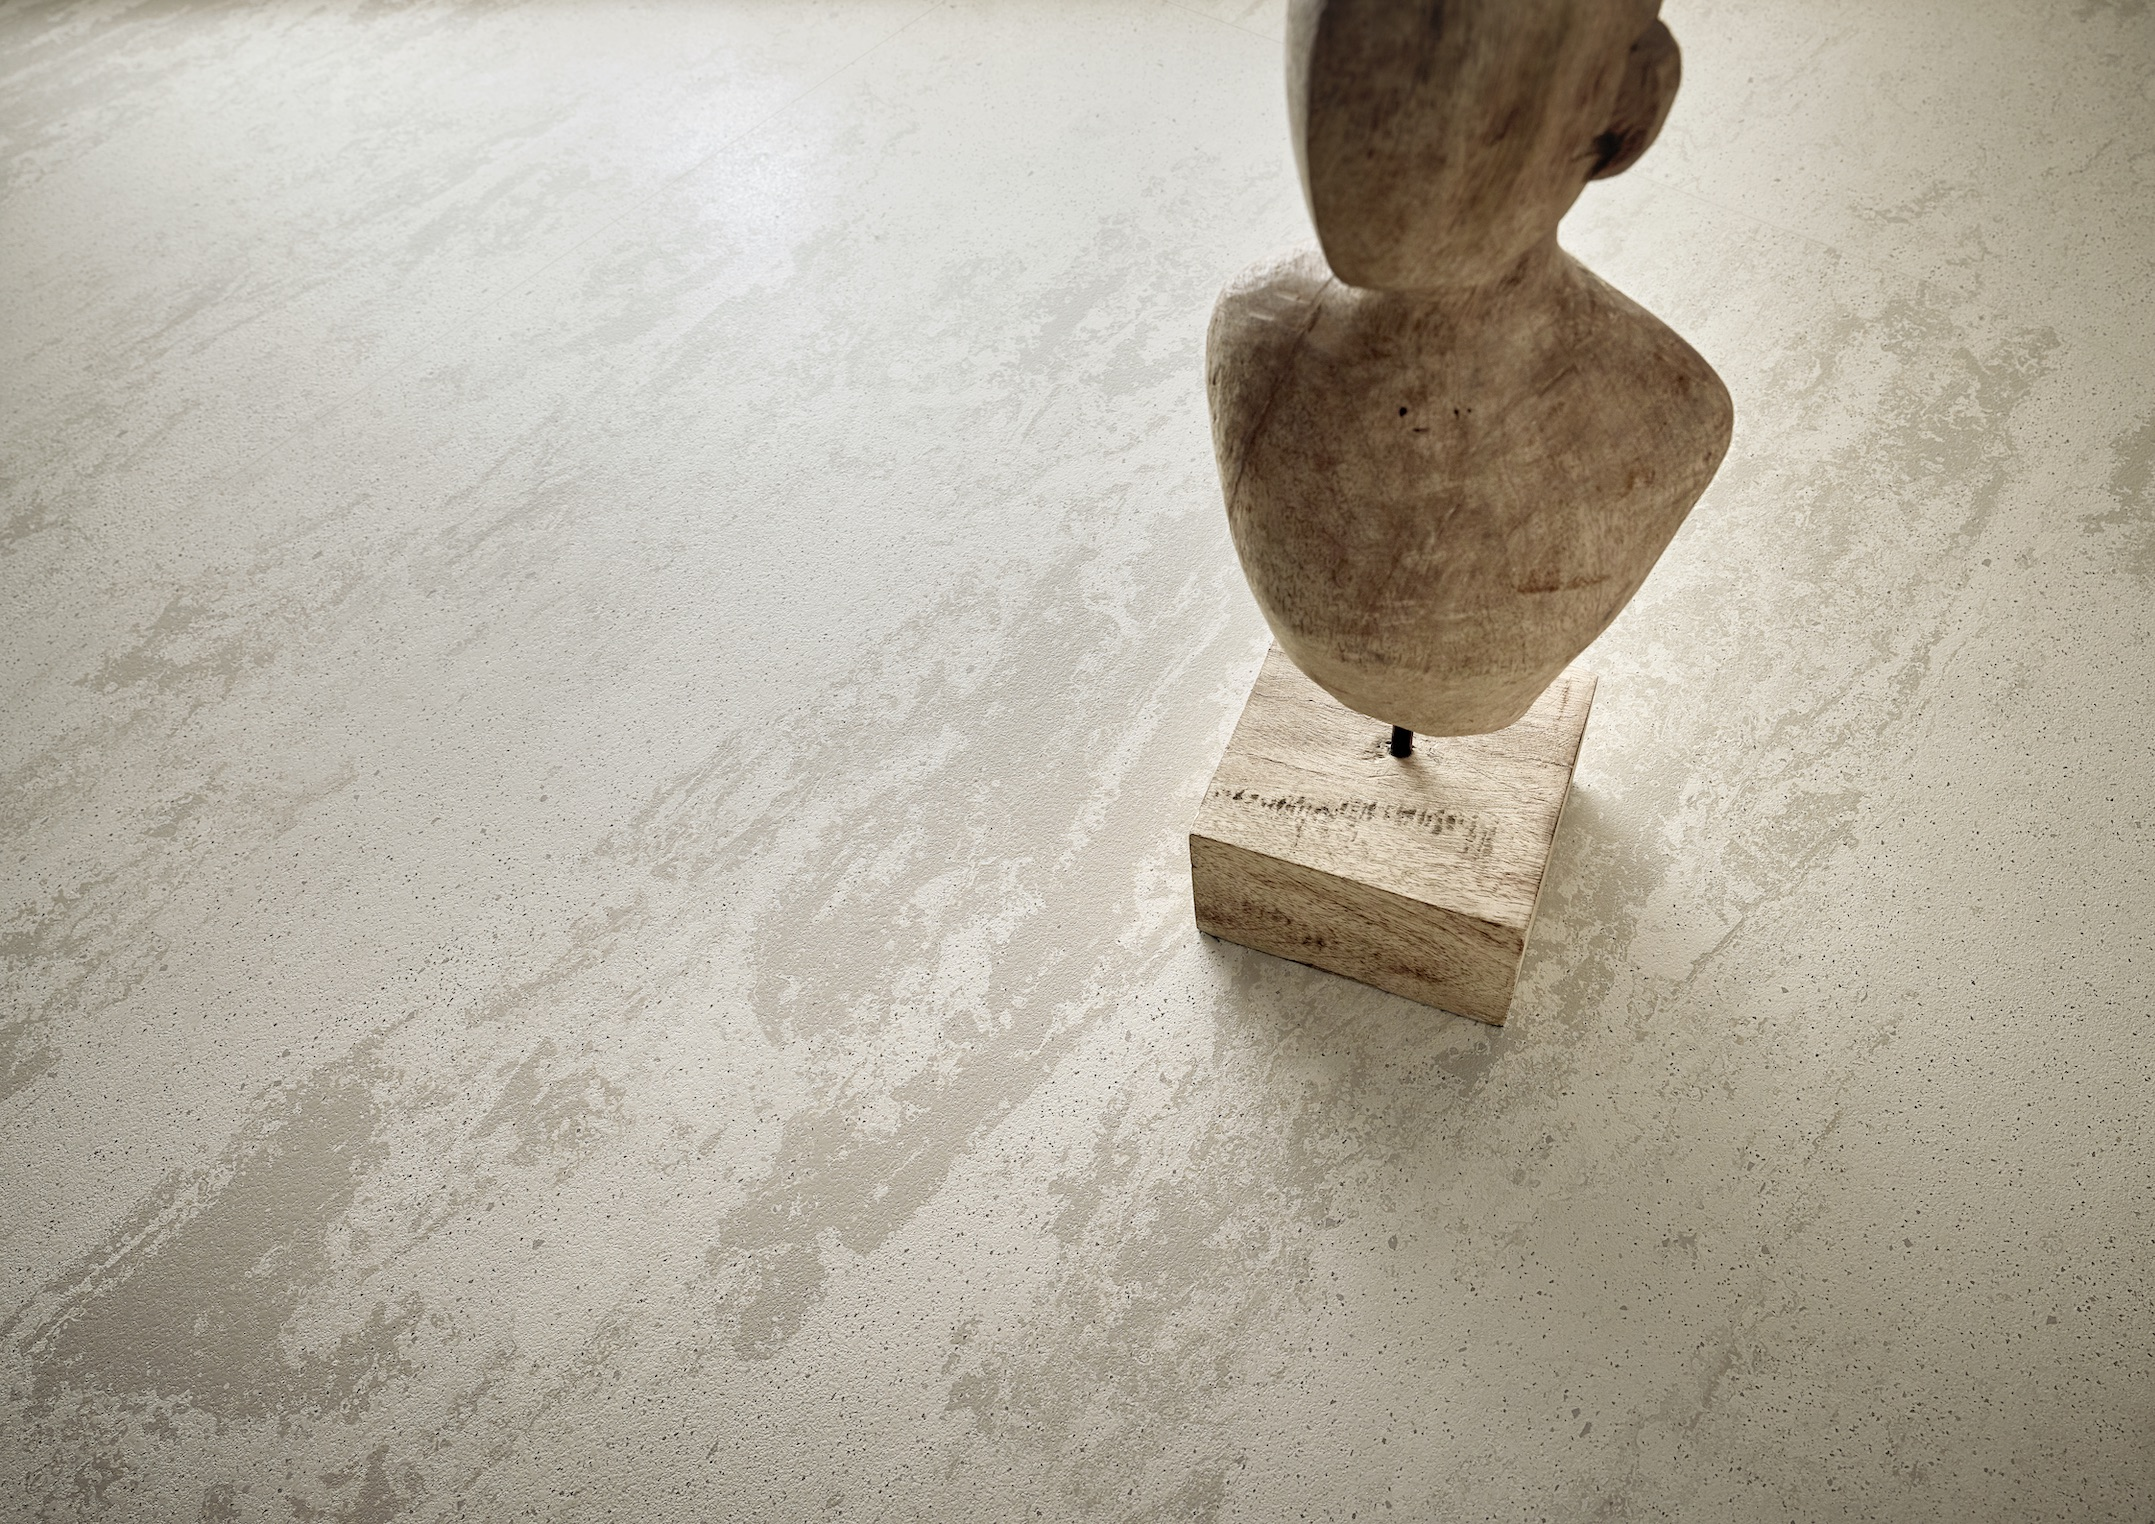 """NEW RUBBER FLOORING DESIGNS REVIVE THE """"URBAN LOOK"""" IN OFFICE FLOORING"""